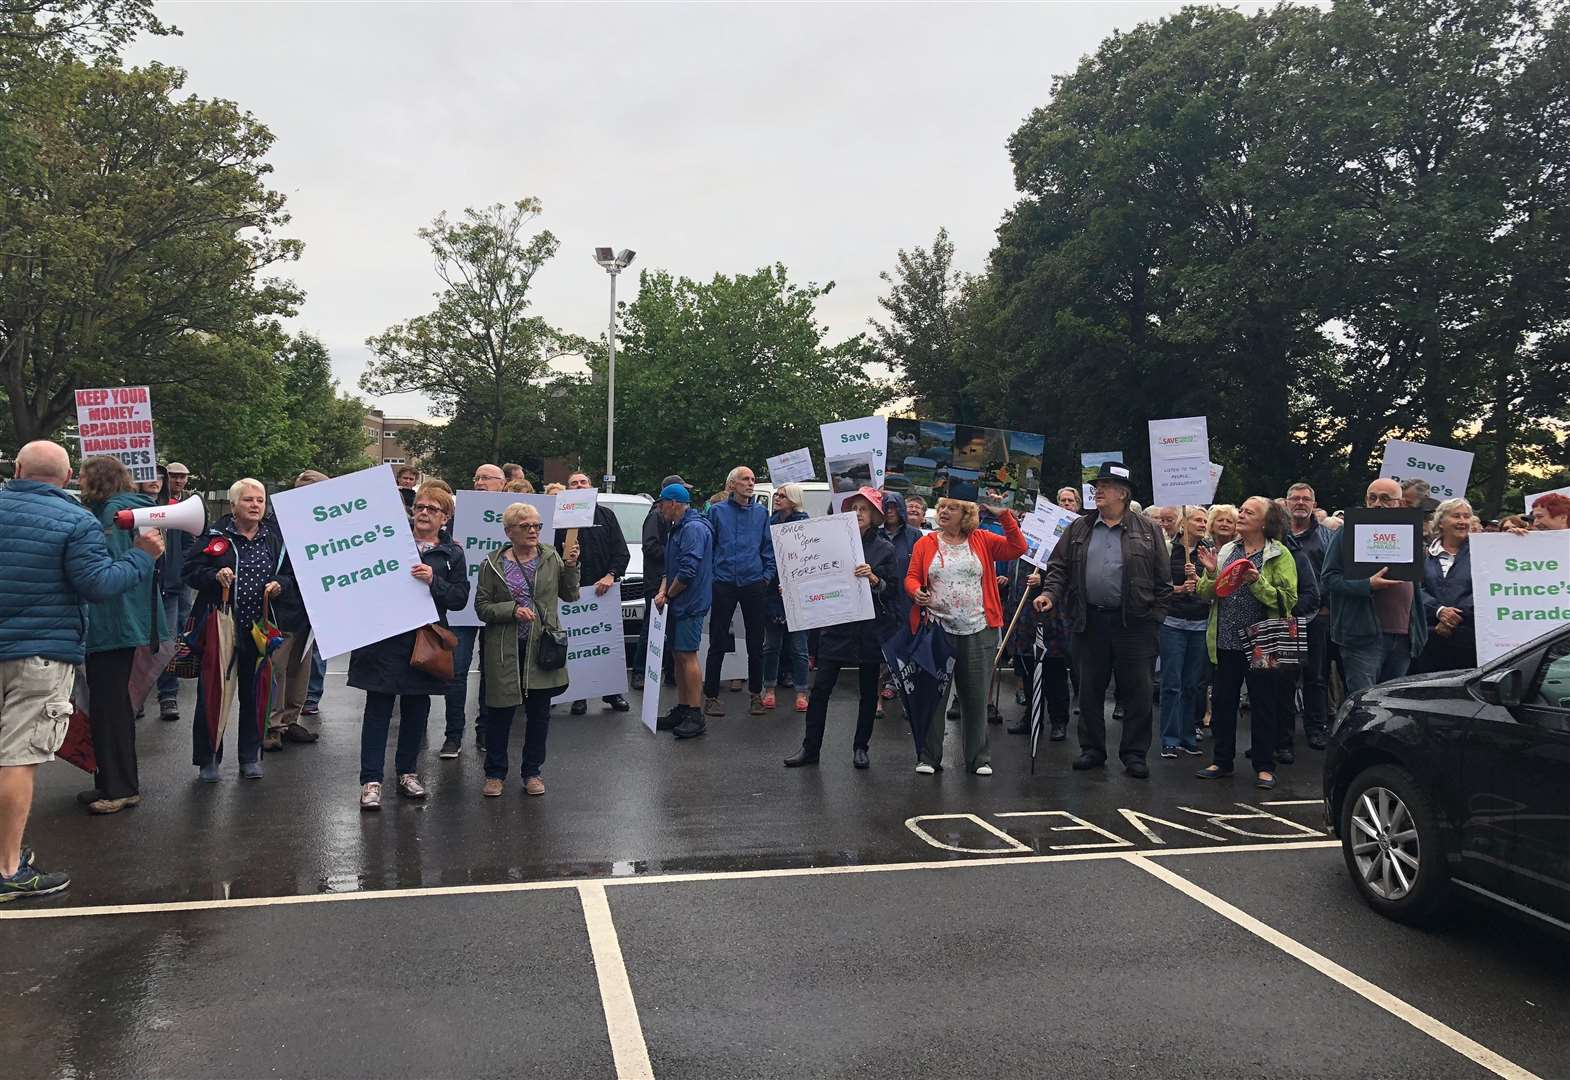 Almost 200 protestors march on council